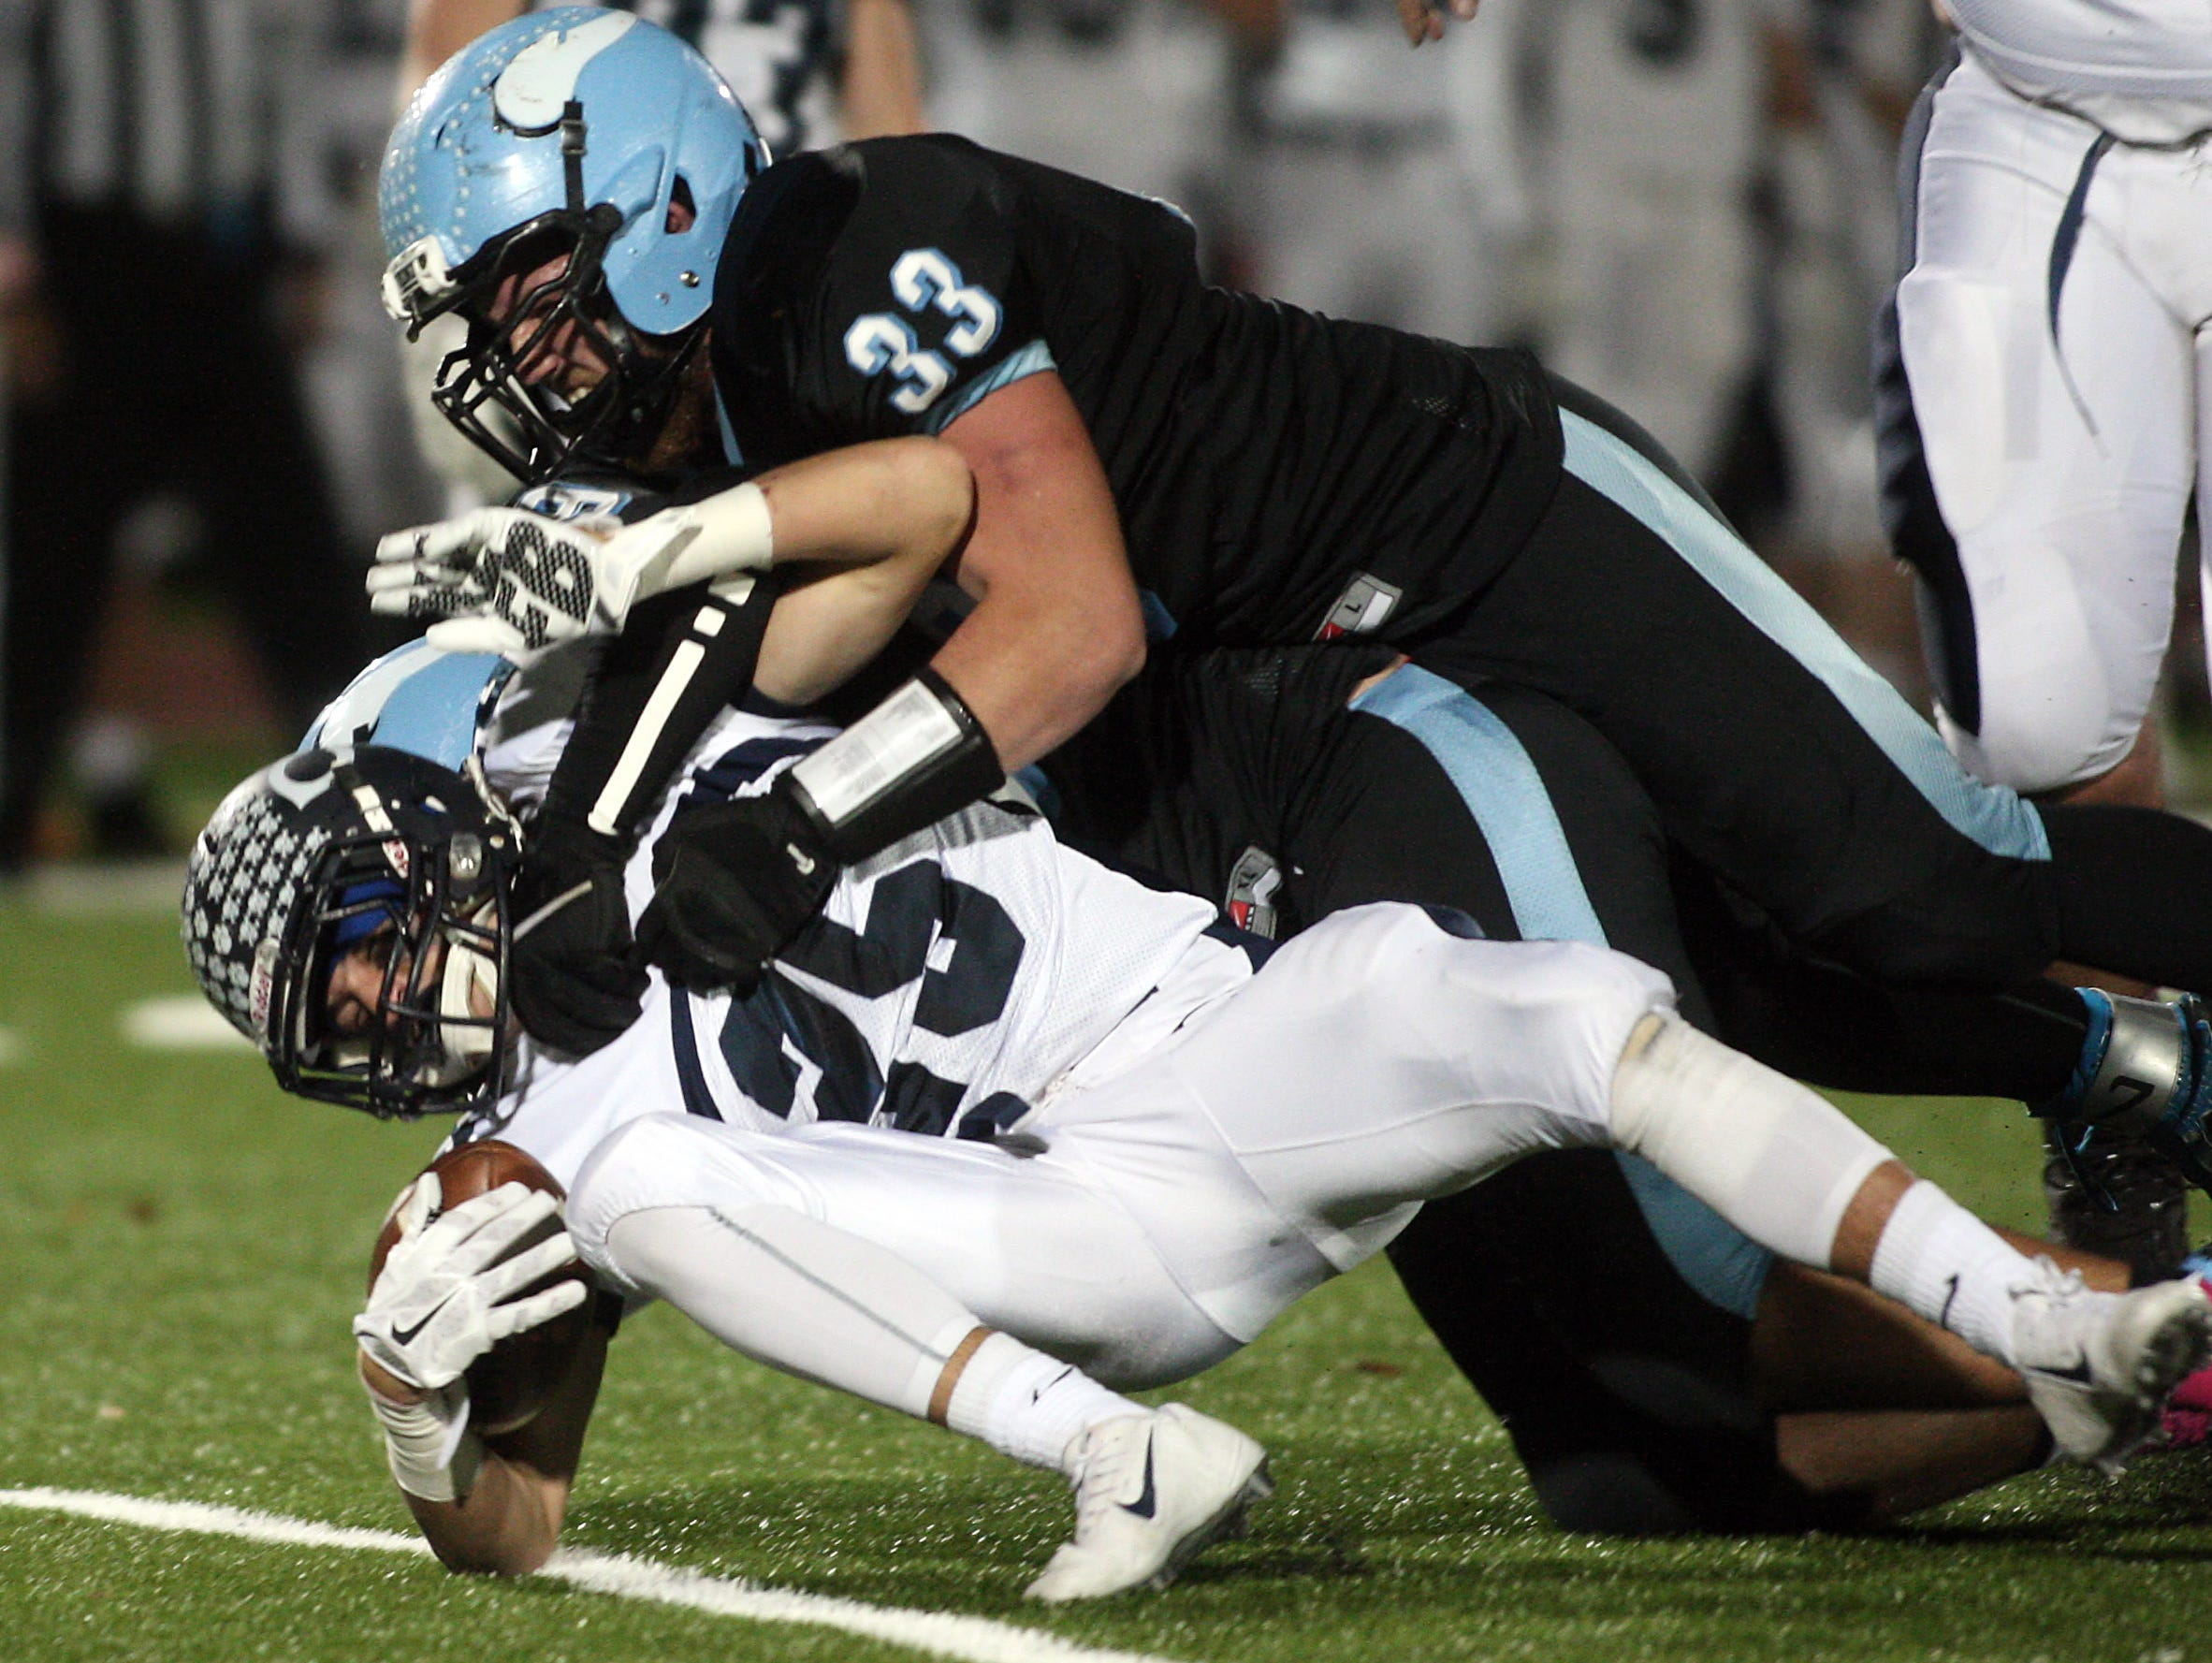 Chatham running back Timmy Adams taken down by Parsippany Hills Jared Salgado (33) and Russell Hohn in a showdown with playoff implications. October 30, 2015, Parsippany, NJ.